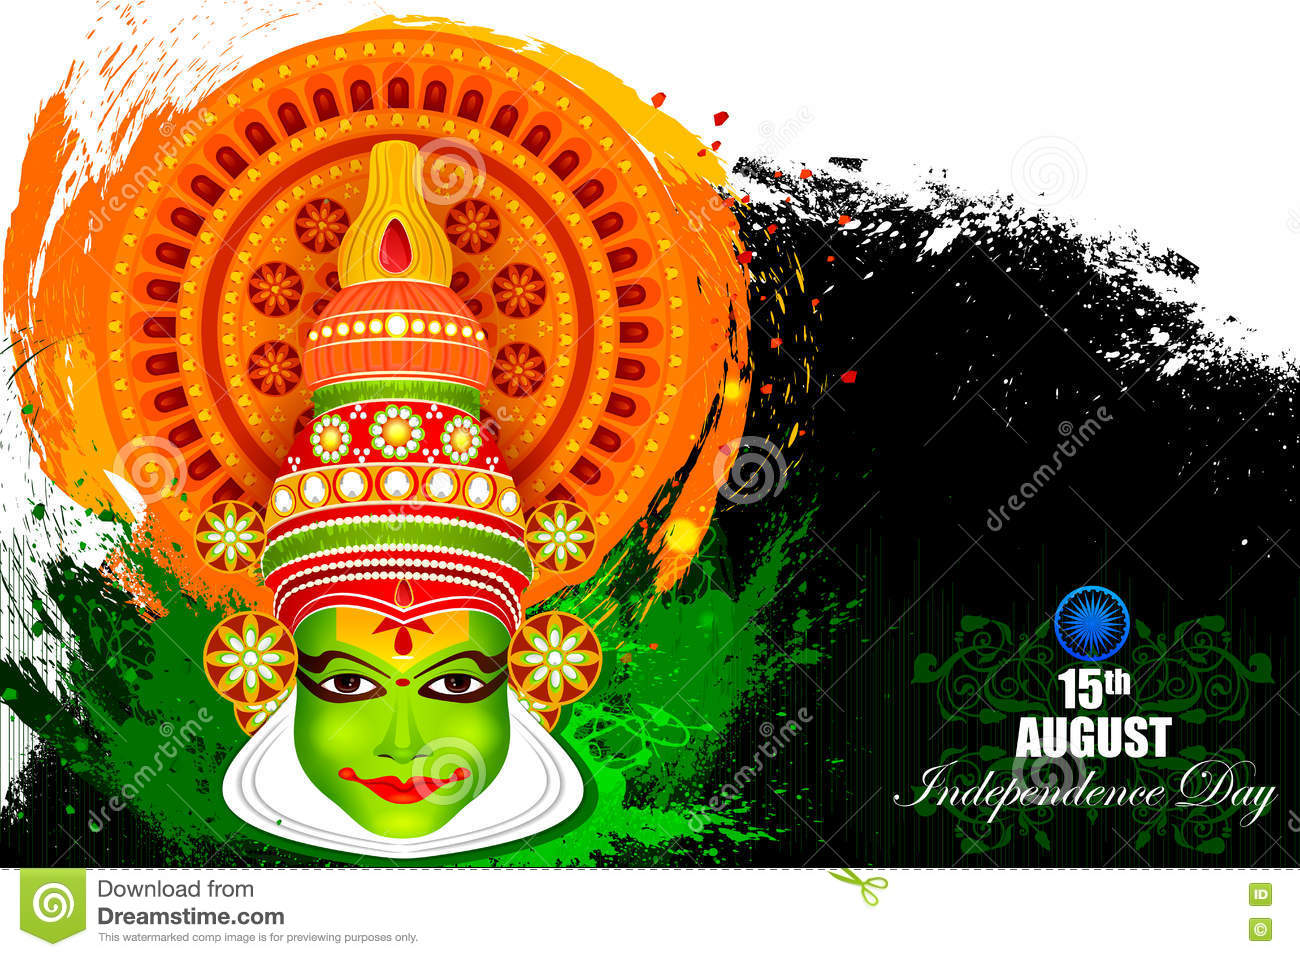 kathakali cartoons pictures illustrations - photo #14